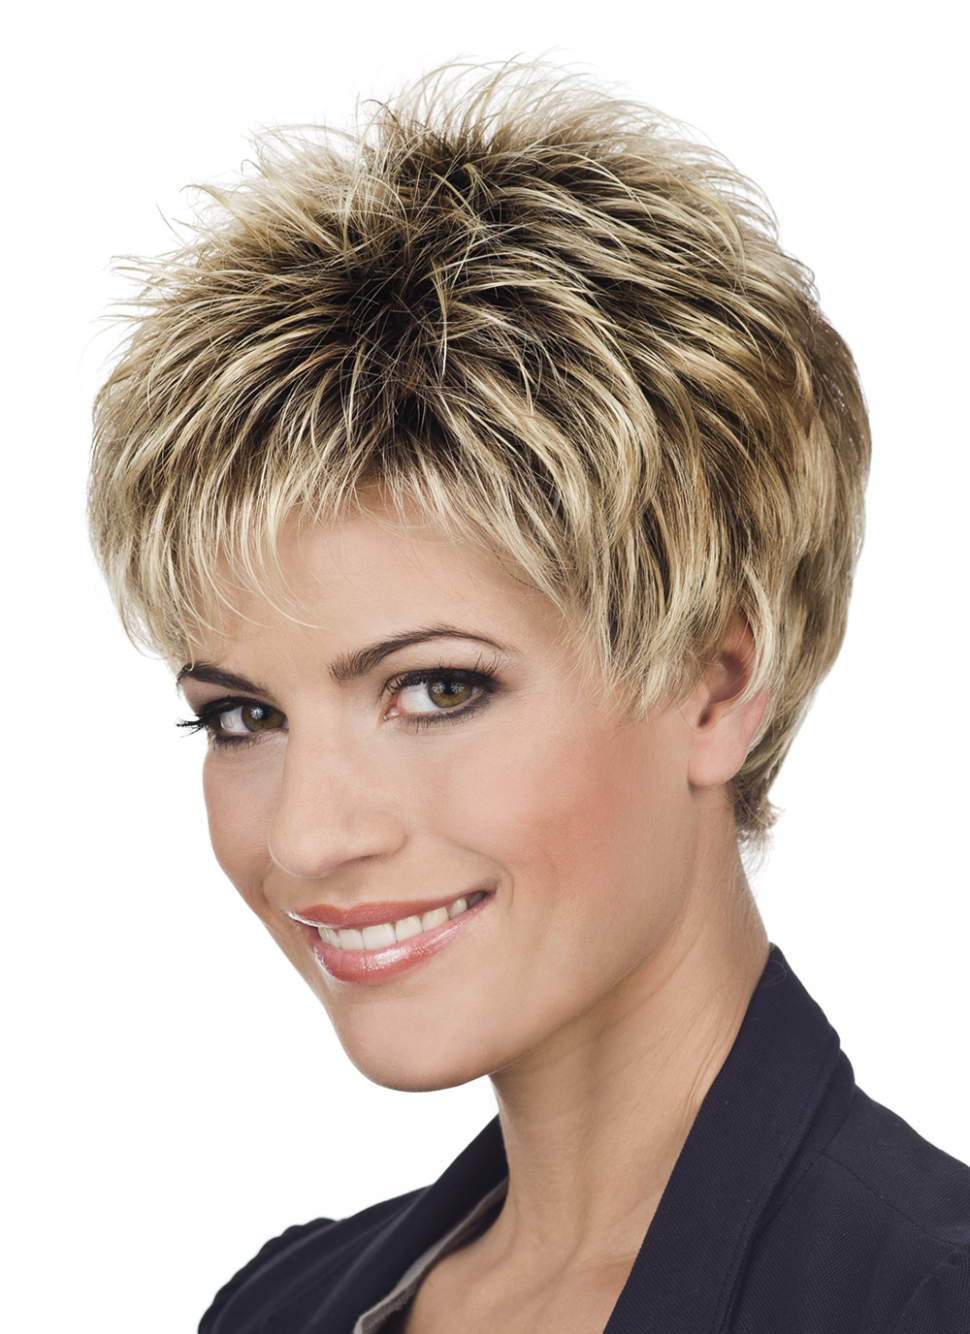 Short haircuts with volume | hair style and color for woman